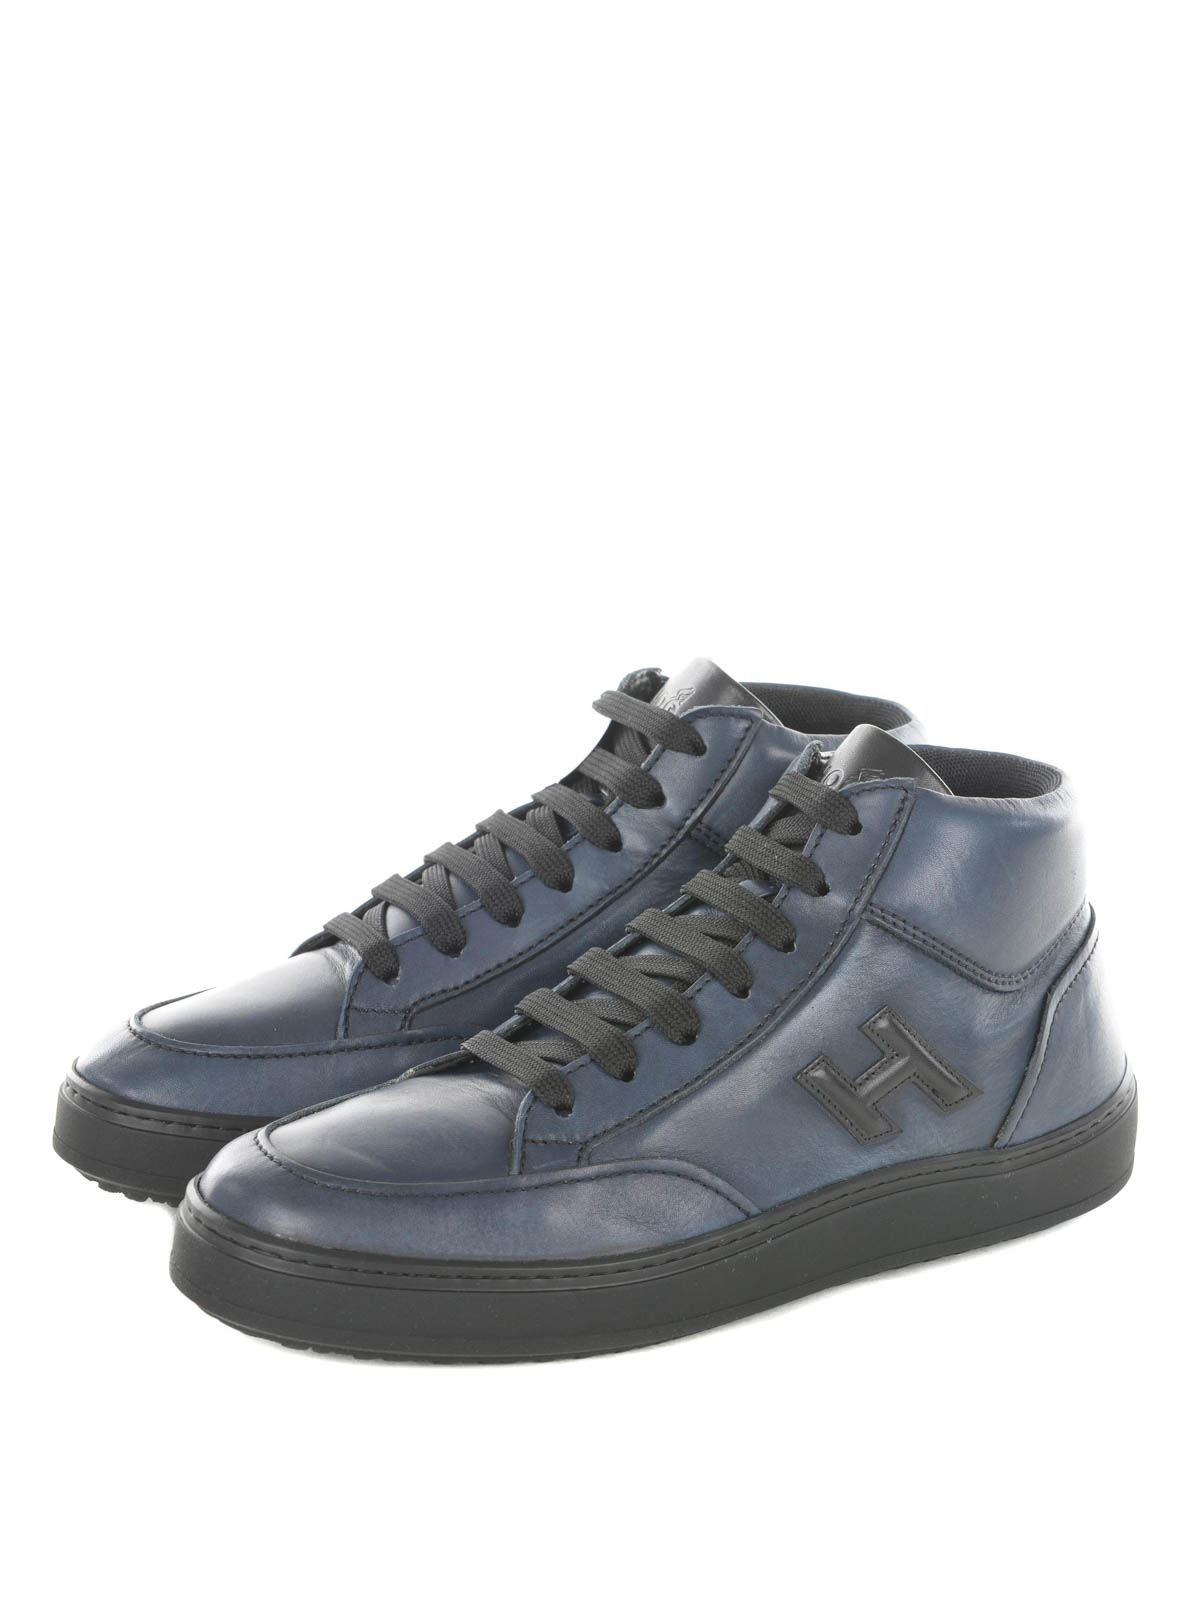 Pre-owned - Leather trainers Hogan evIkRQ4n